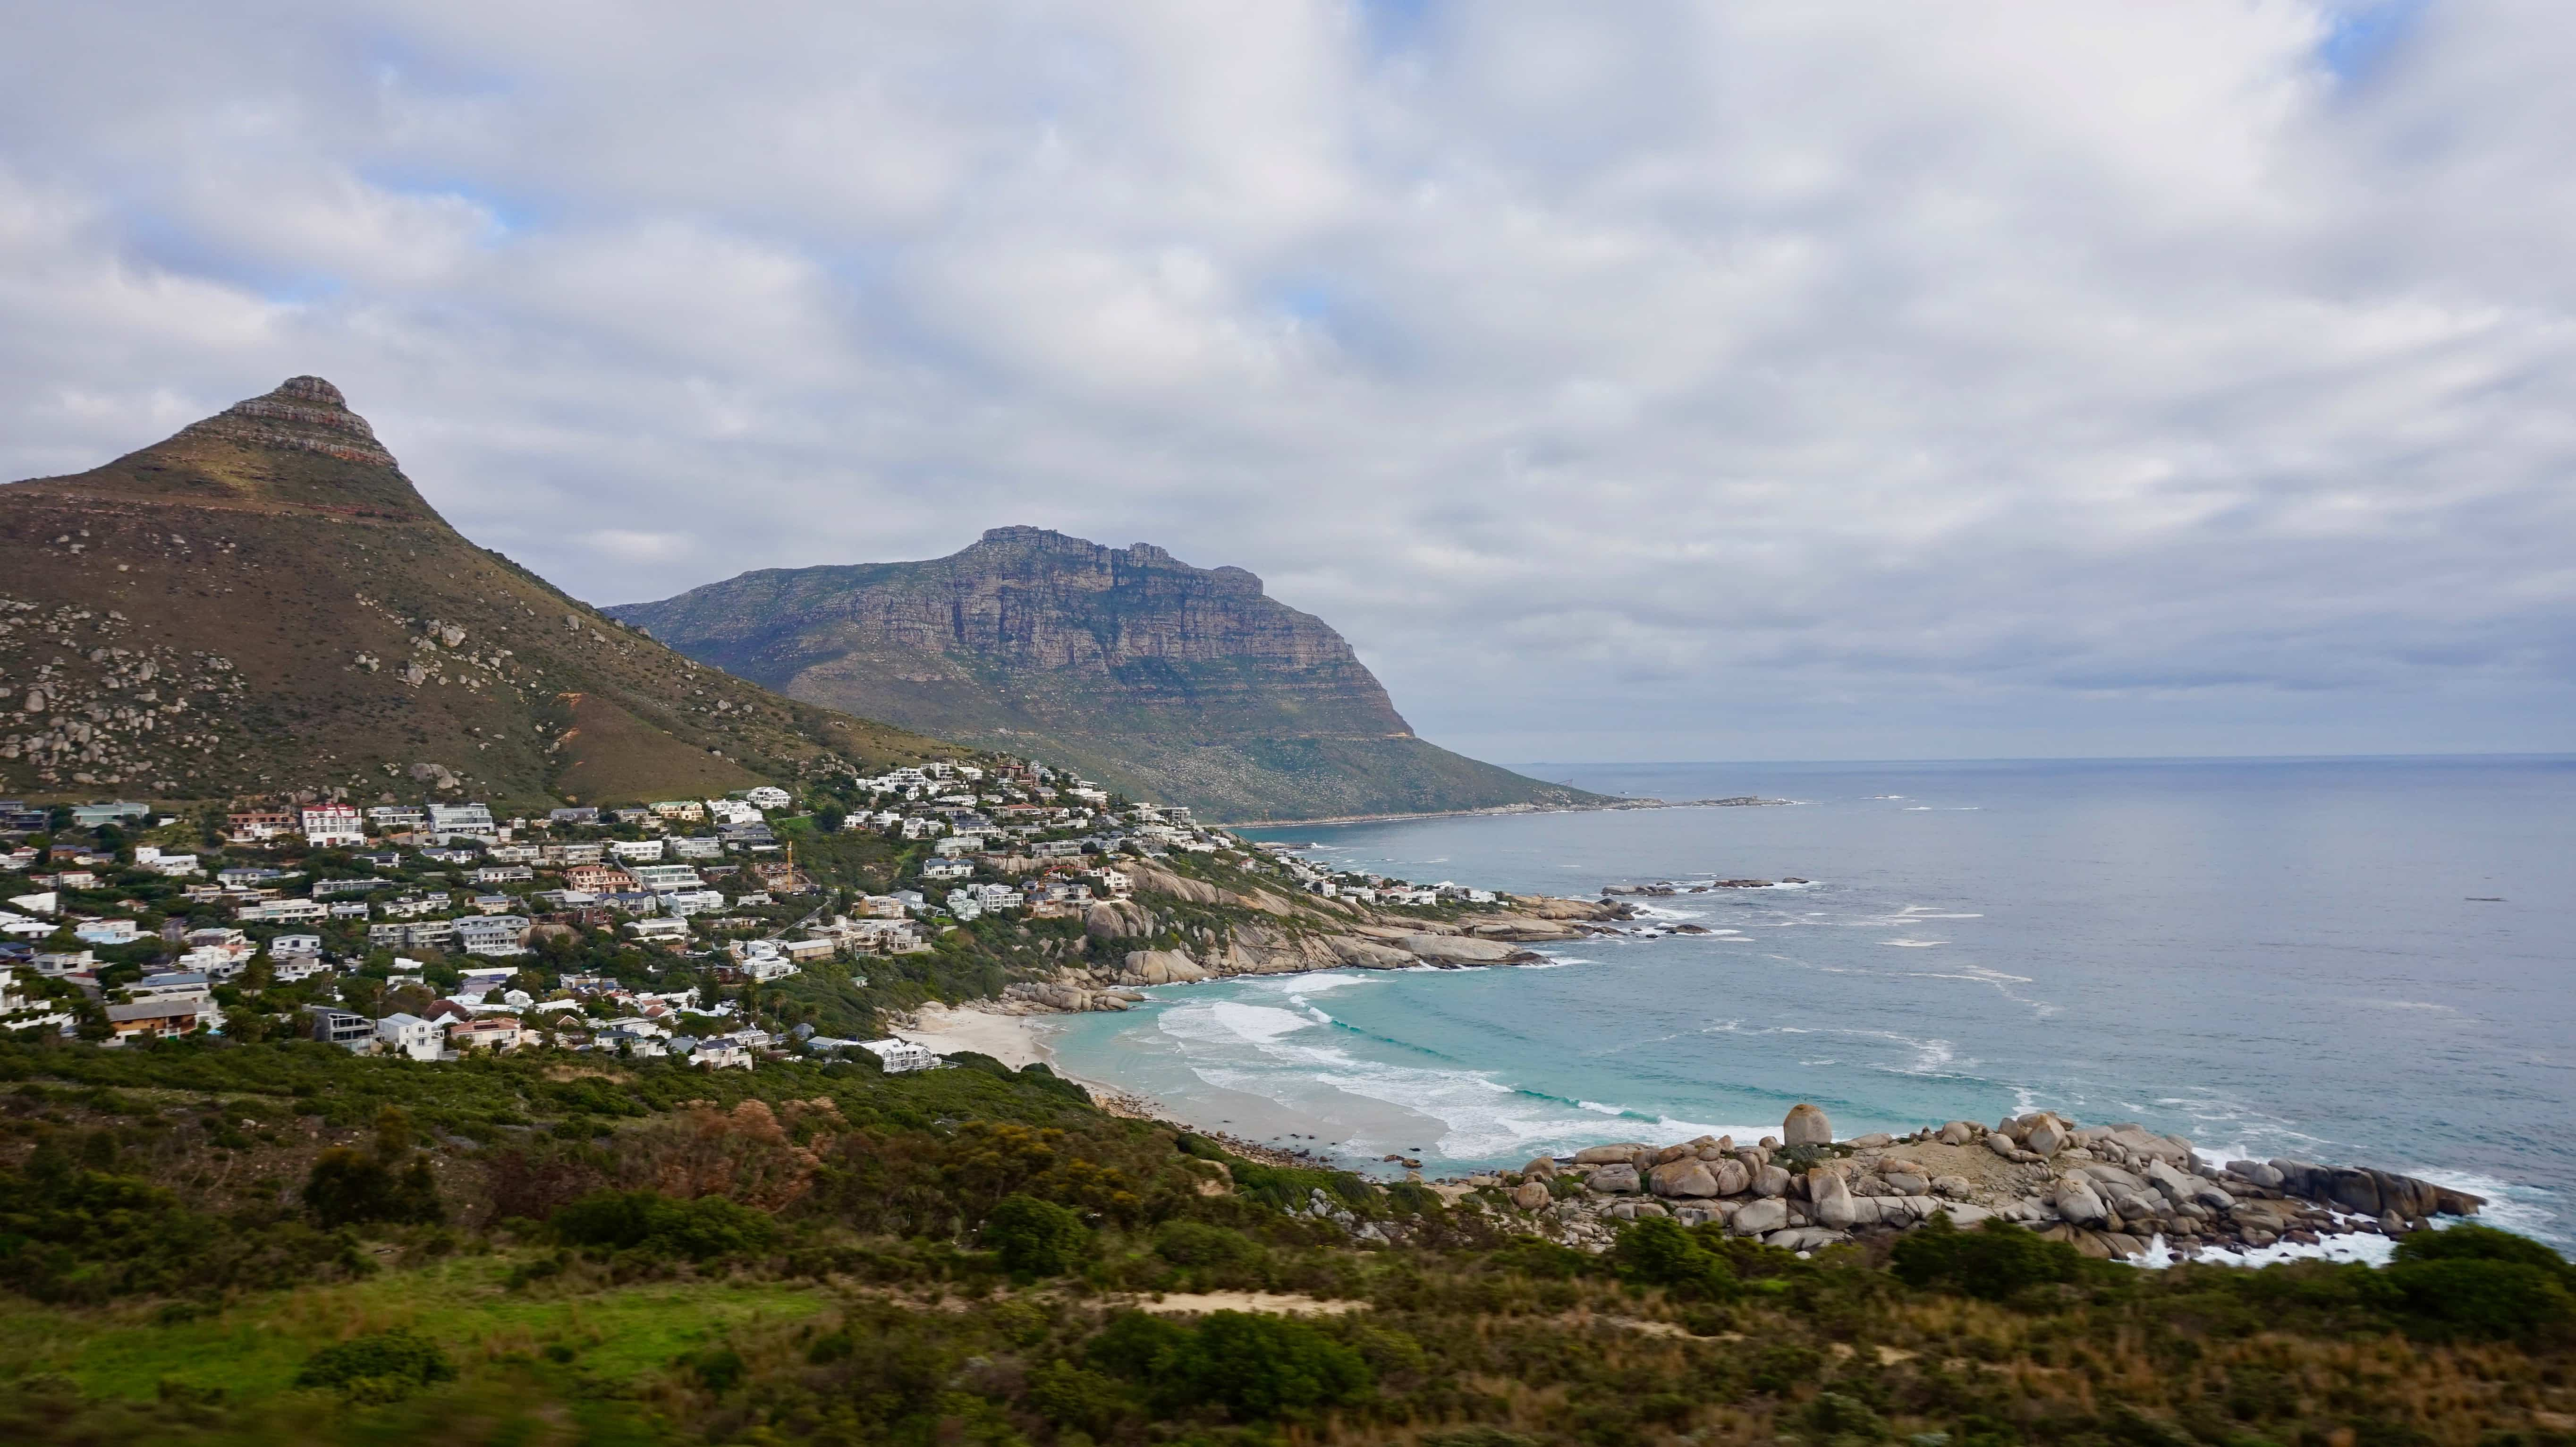 View of Lion's Head and the 12 Apostles Mountain Range in Cape Town